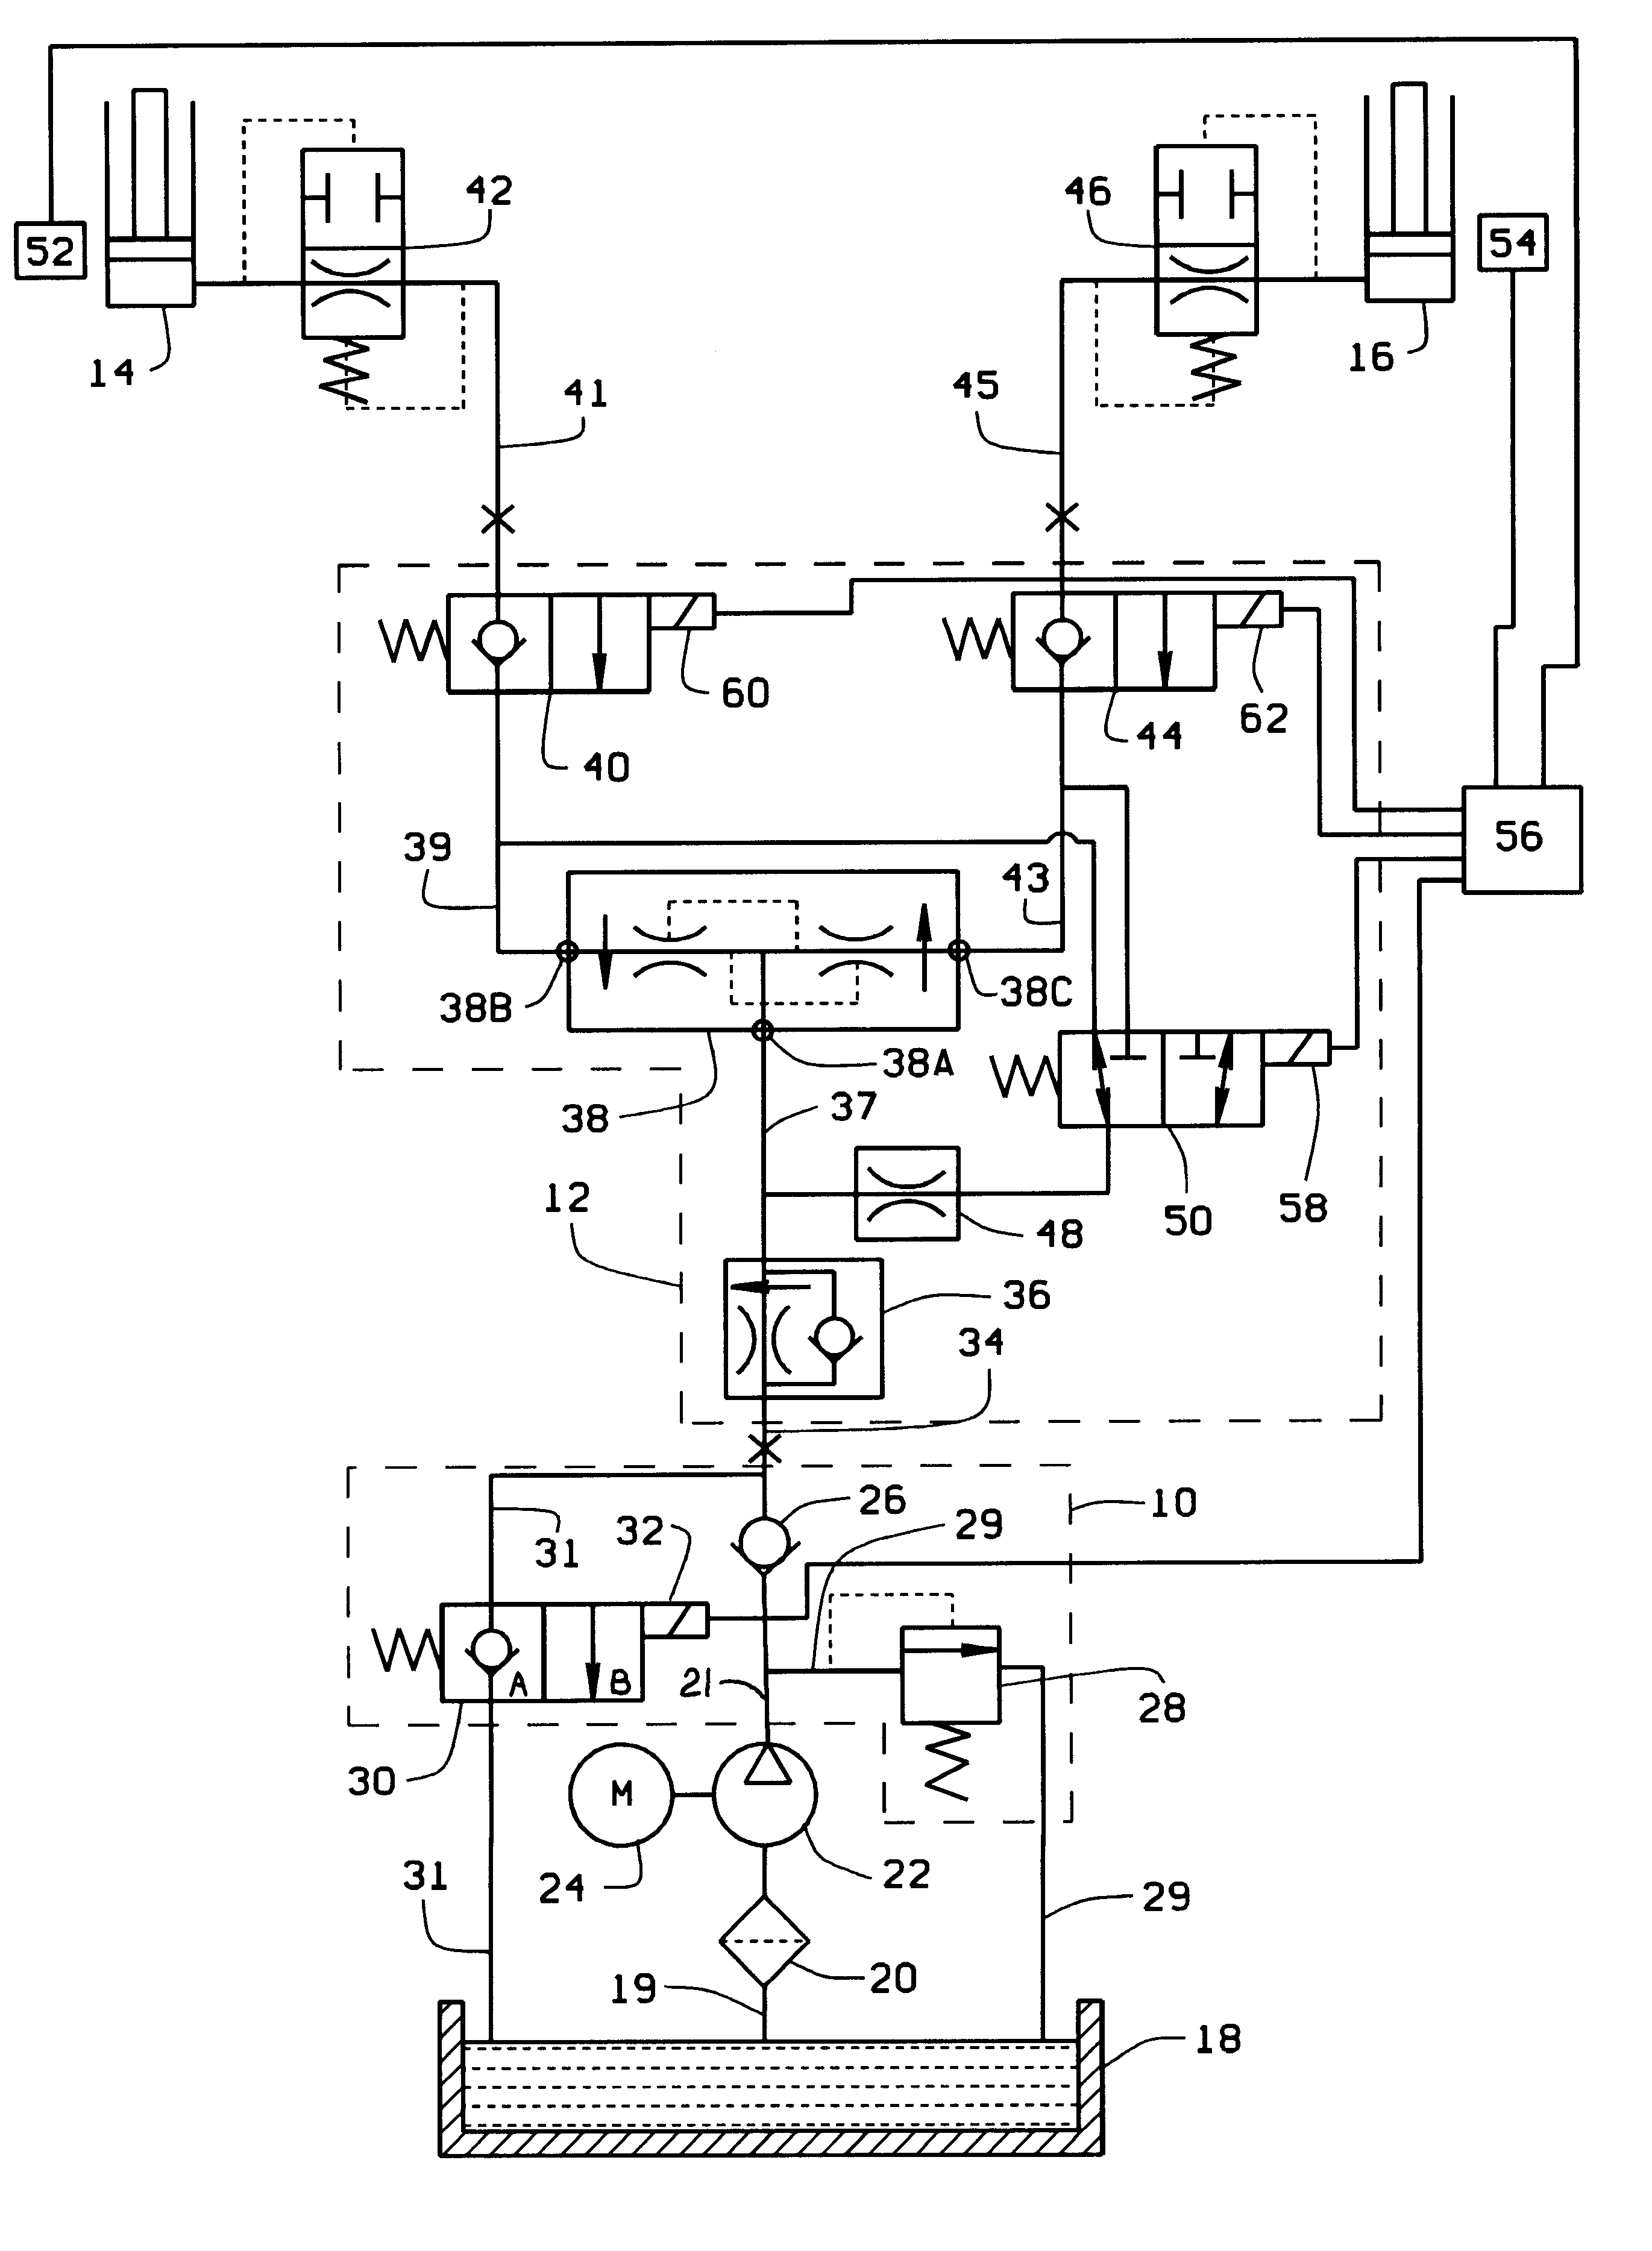 Electric Circuit Drawing At Free For Personal Use Electrical Control Diagram 2741x3735 Design Wiring Components